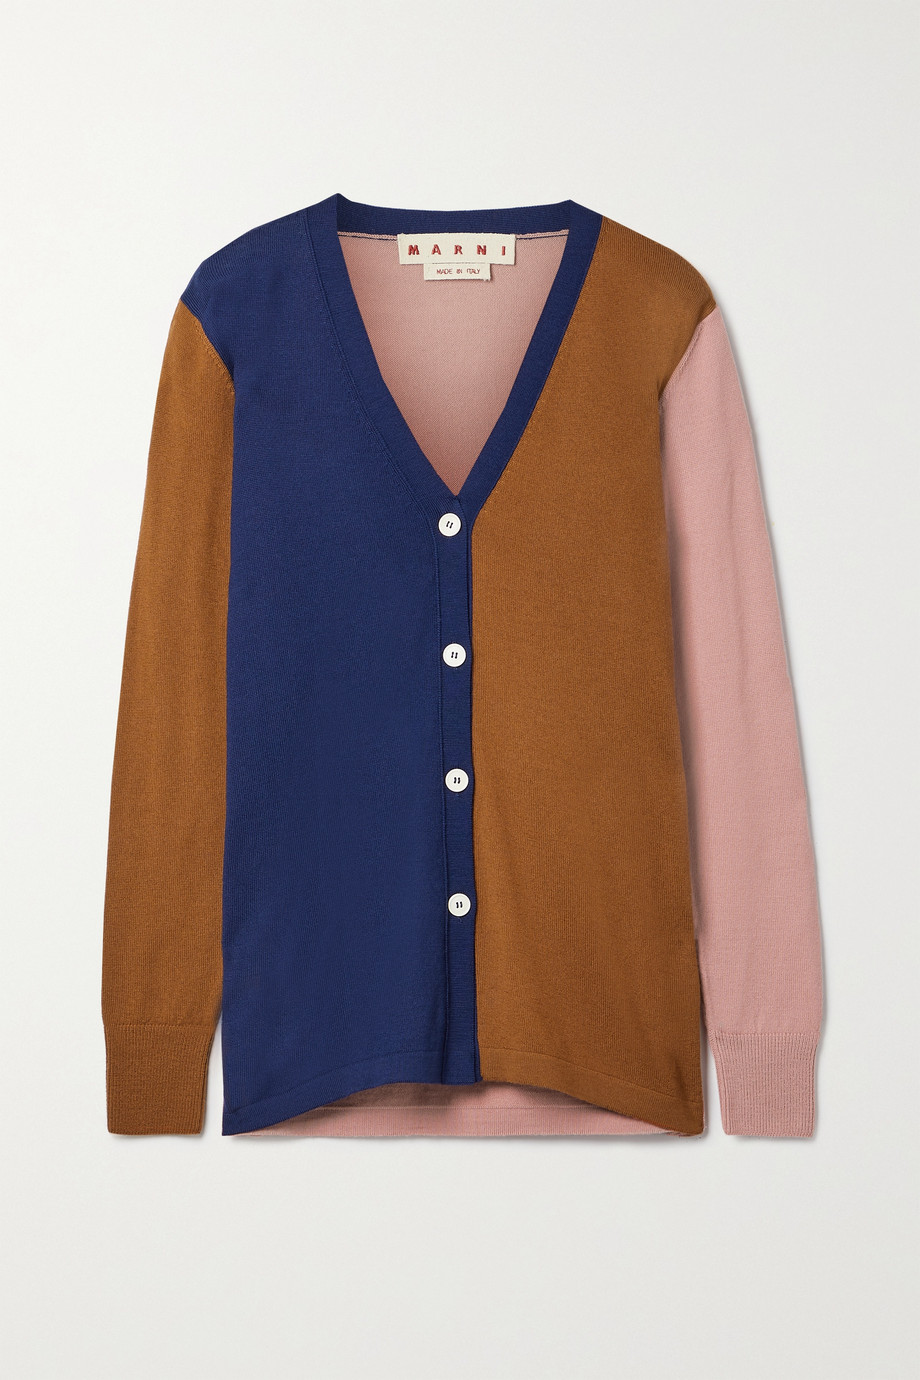 MARNI Color-block wool cardigan